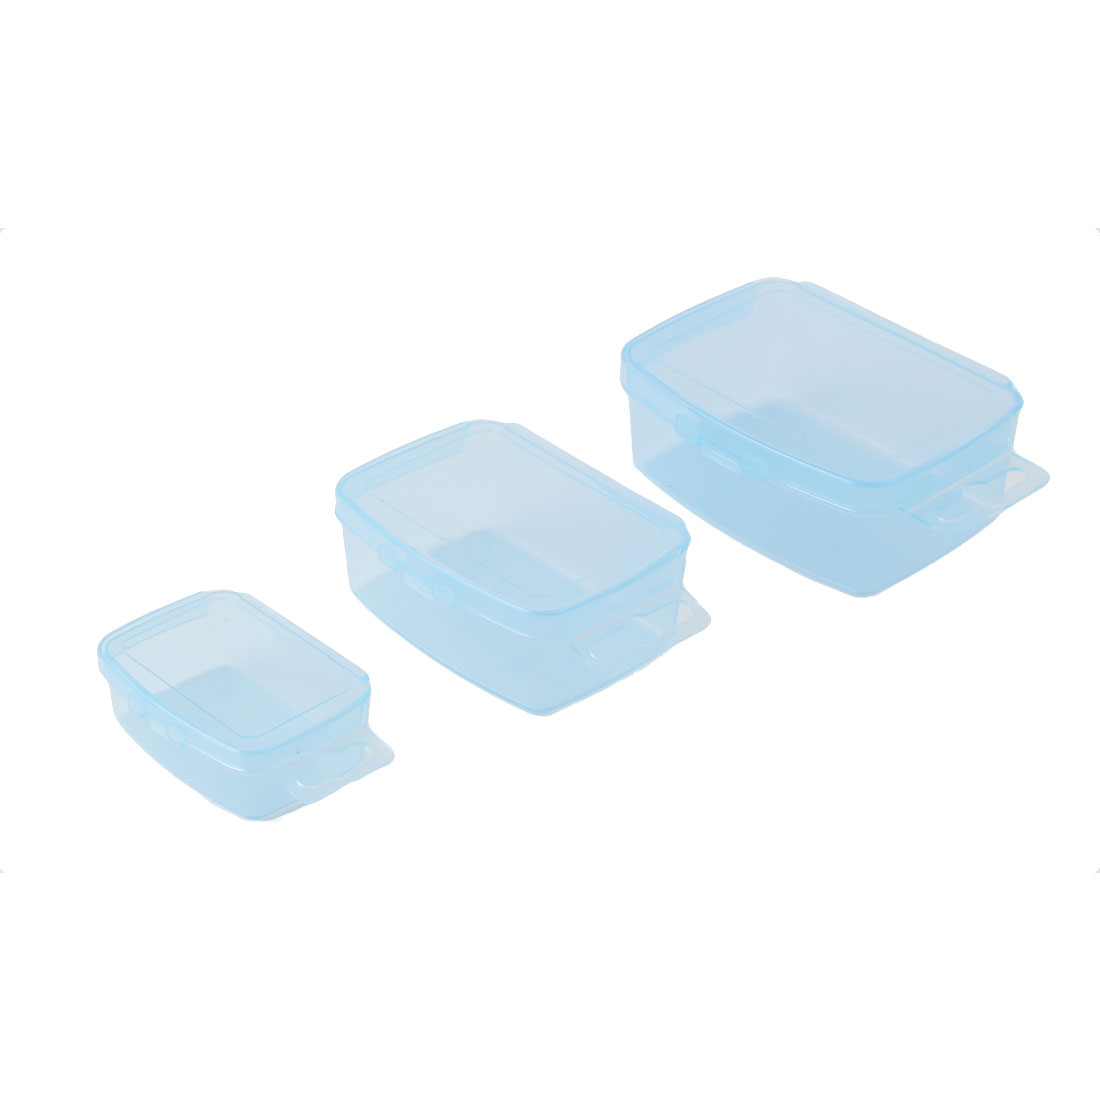 Home Travel Portable Plastic Rectangle Storage Box Case Container Holder Blue 3 in 1